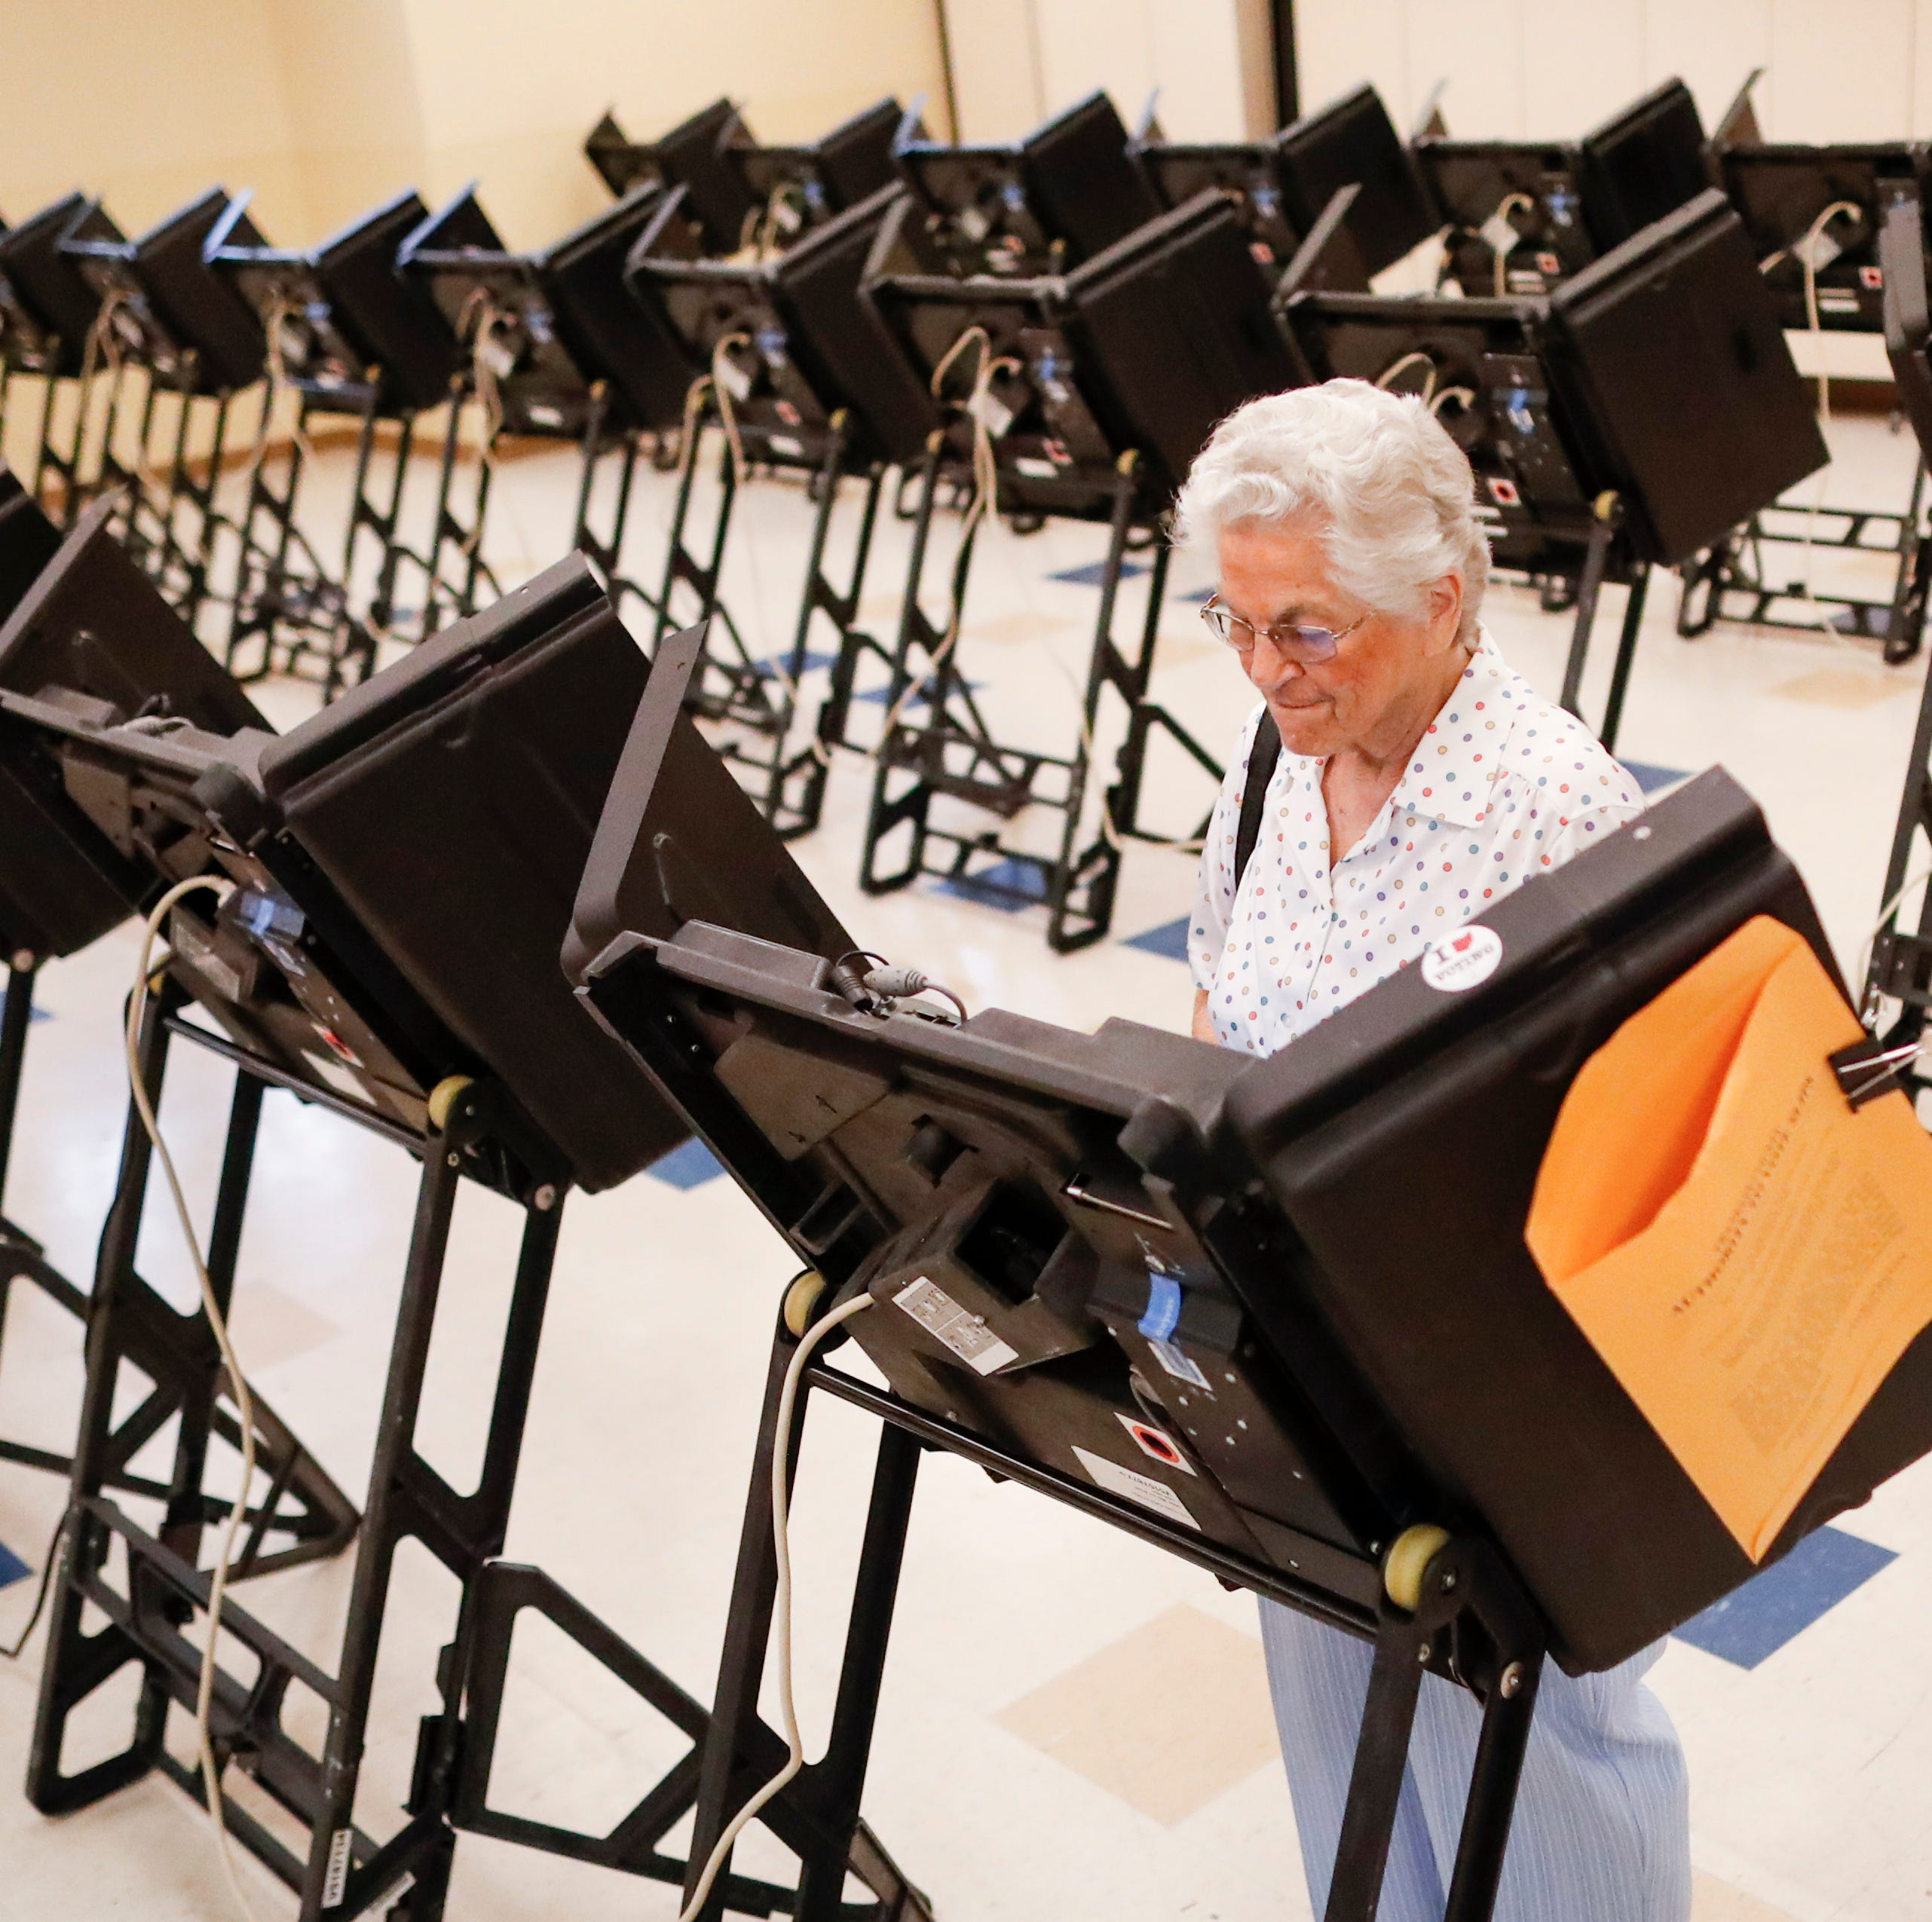 Voters cast their ballots among an array of electronic voting machines in a polling station at the Noor Islamic Cultural Center, Tuesday, Aug. 7, 2018, in Dublin, Ohio.